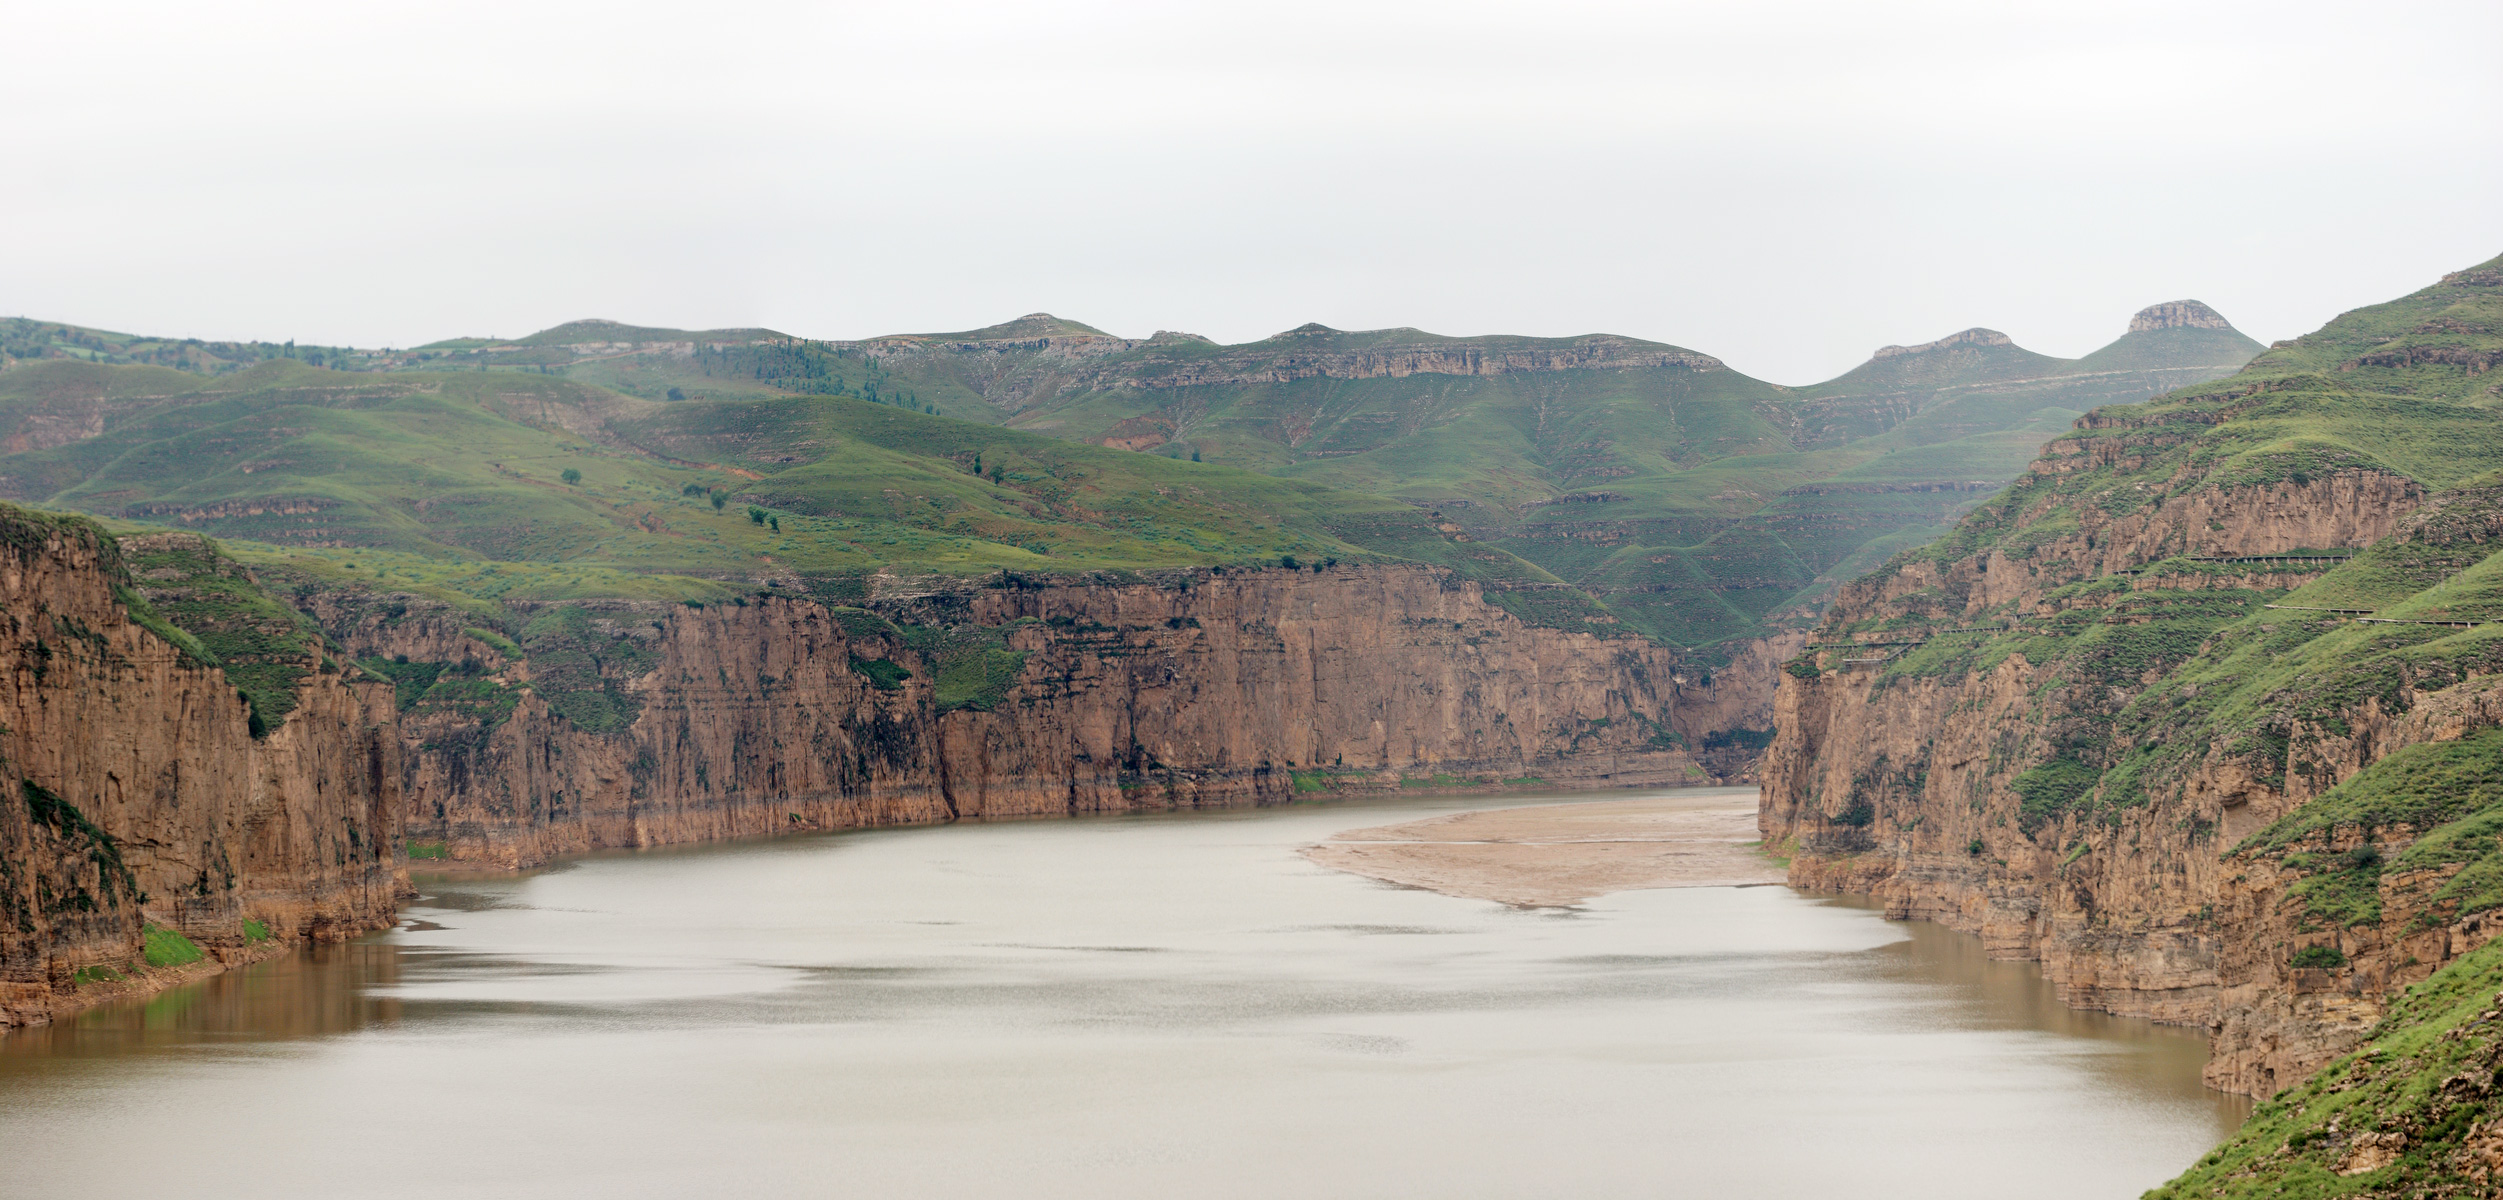 Huang He River In China Pictures to Pin on Pinterest ...